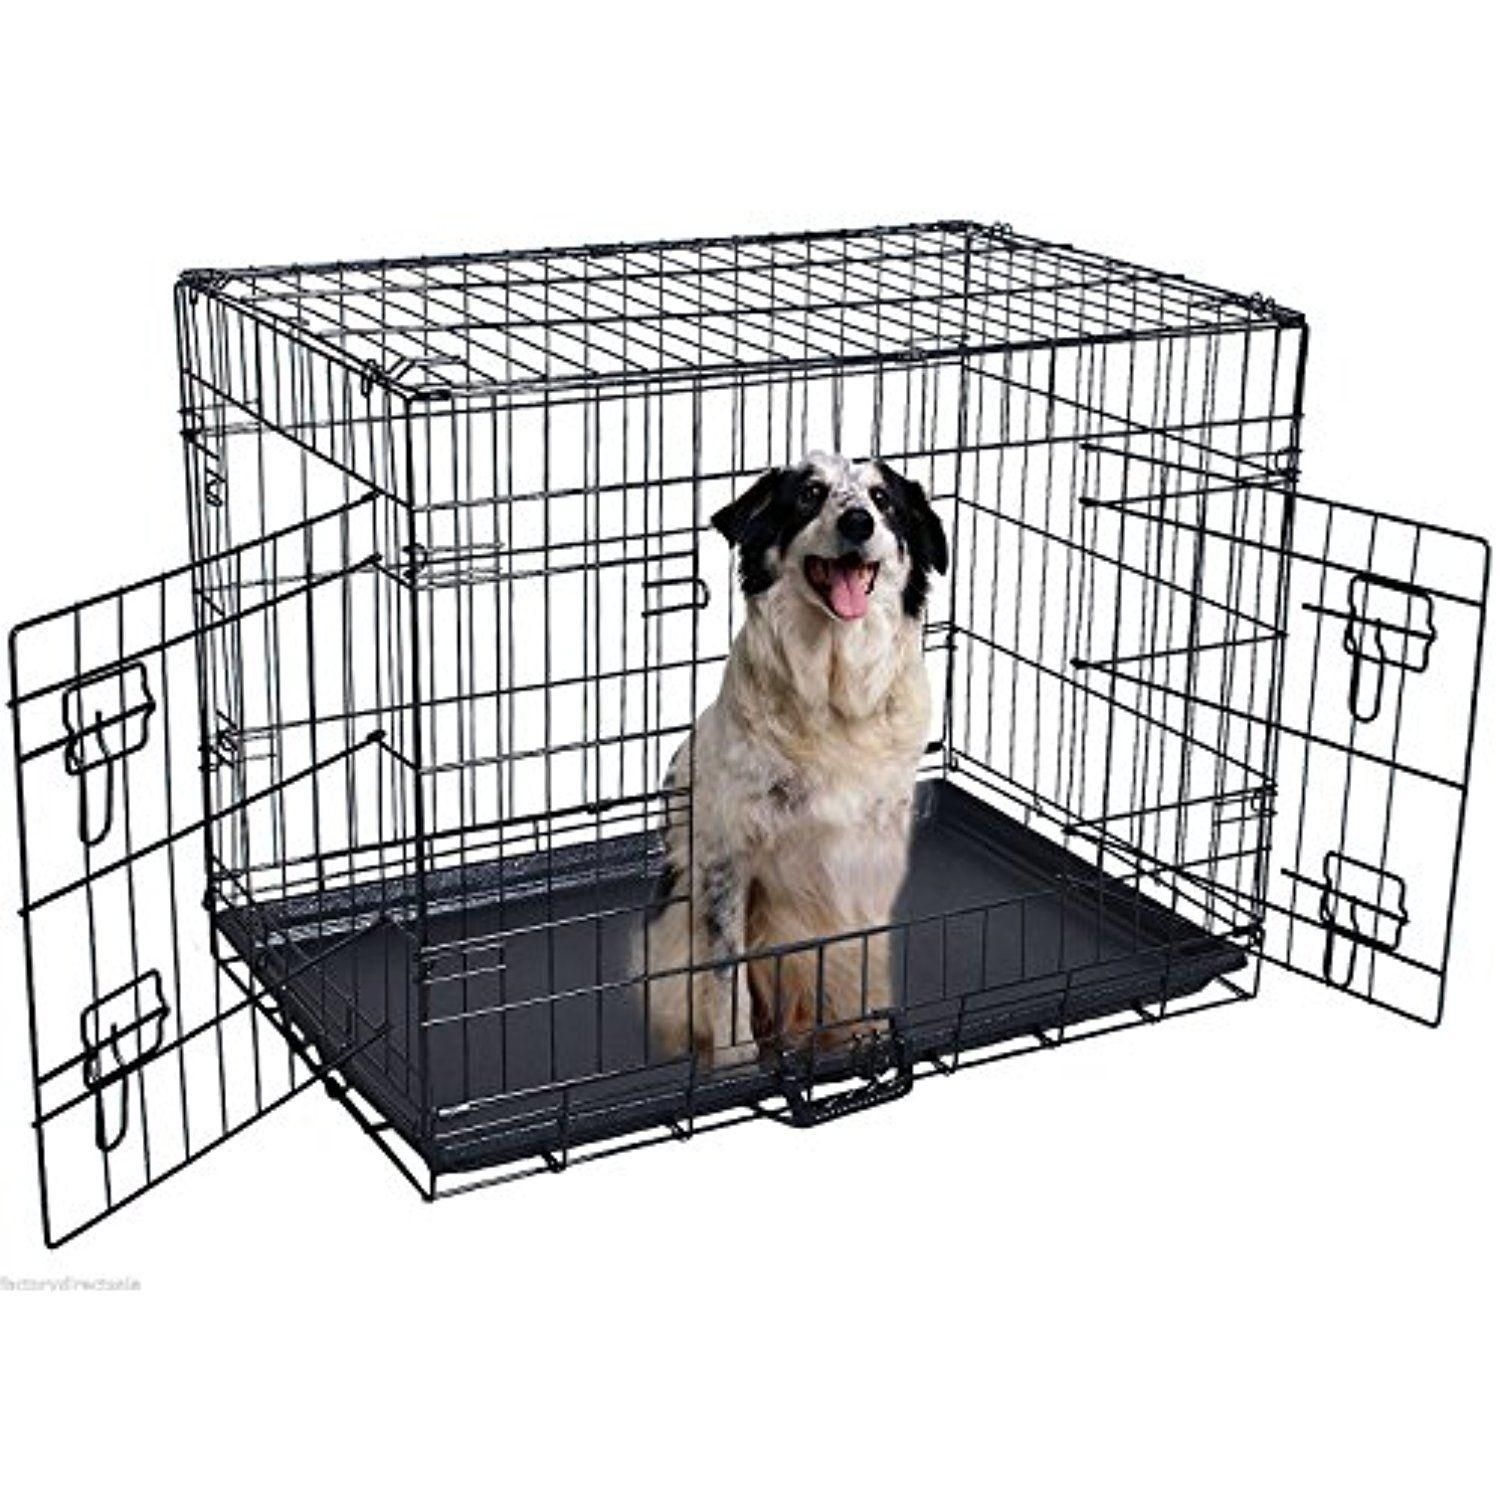 Awesome Cage for Dogs Walmart | GOME | Cat cages, Dog cages, Pet kennels